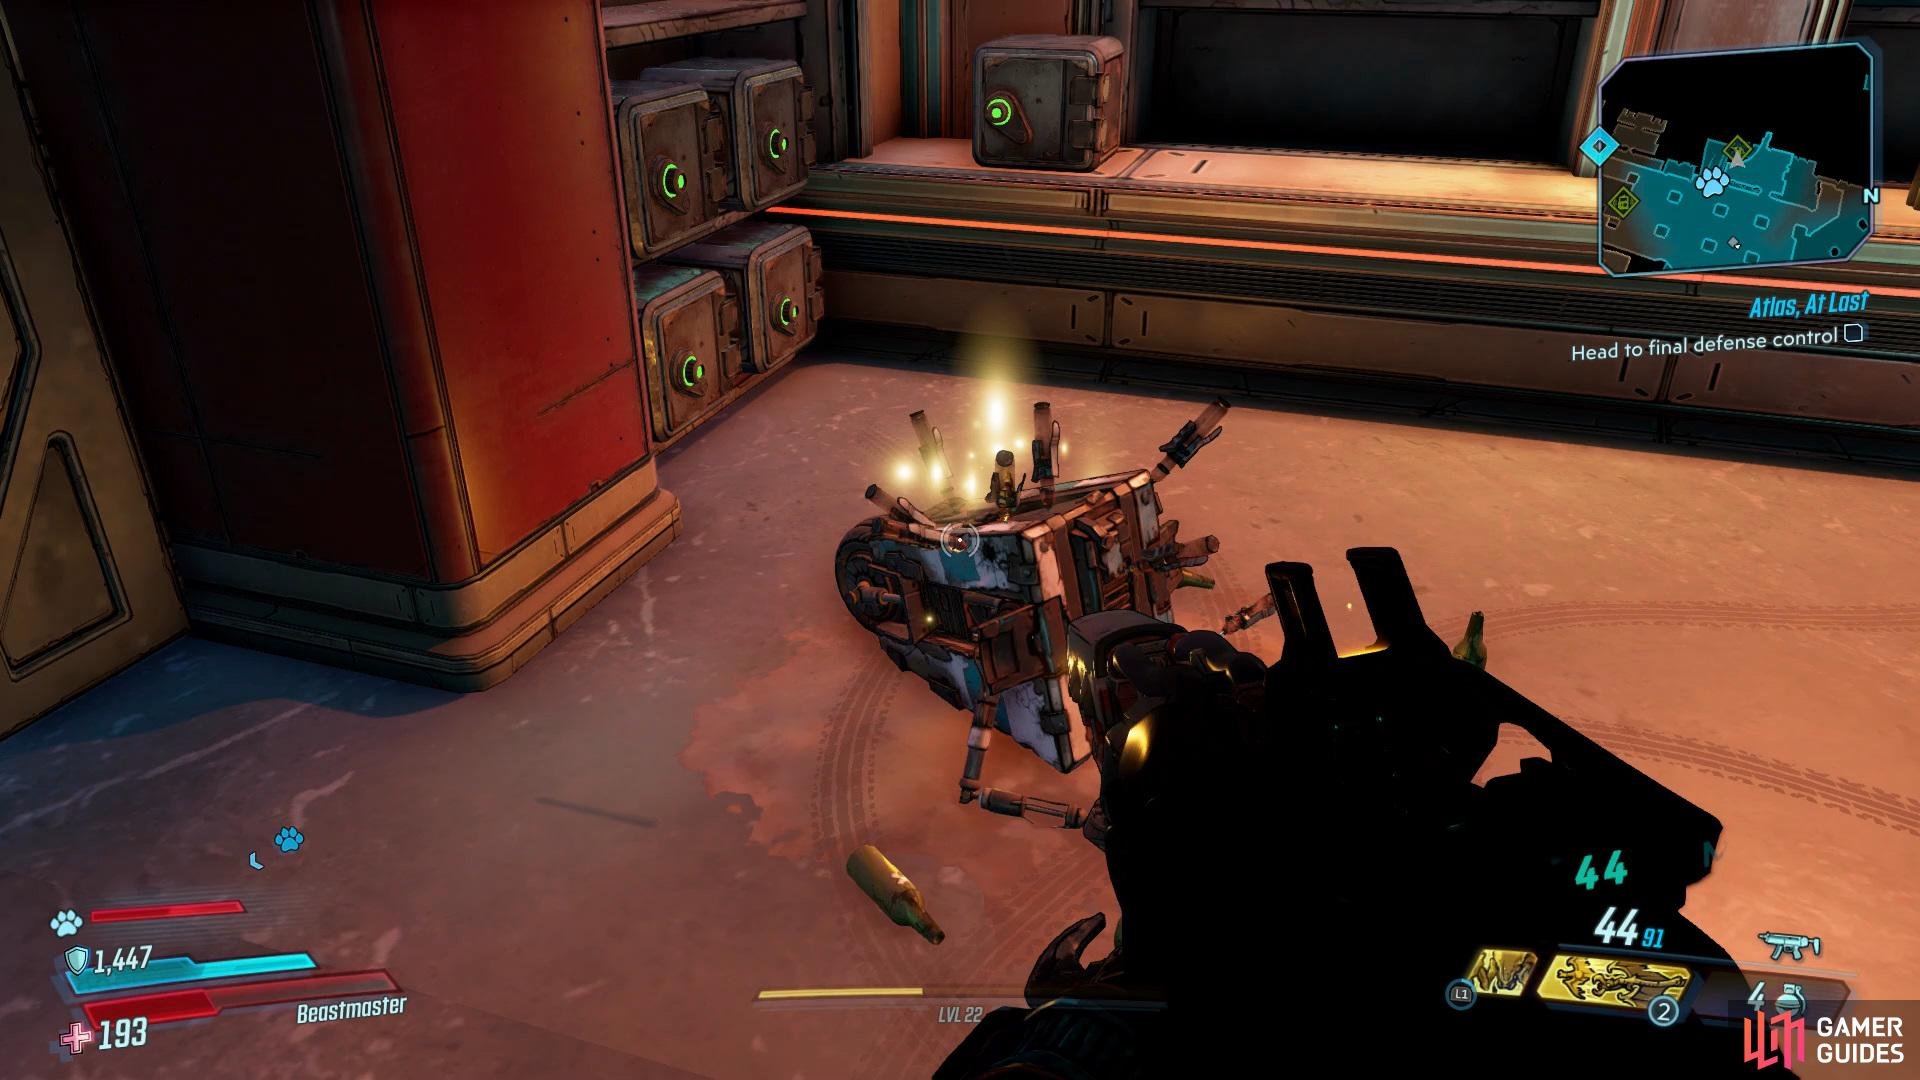 You'll be able to find the Dead Claptrap hidden behind a bar in the upper section of the lobby,